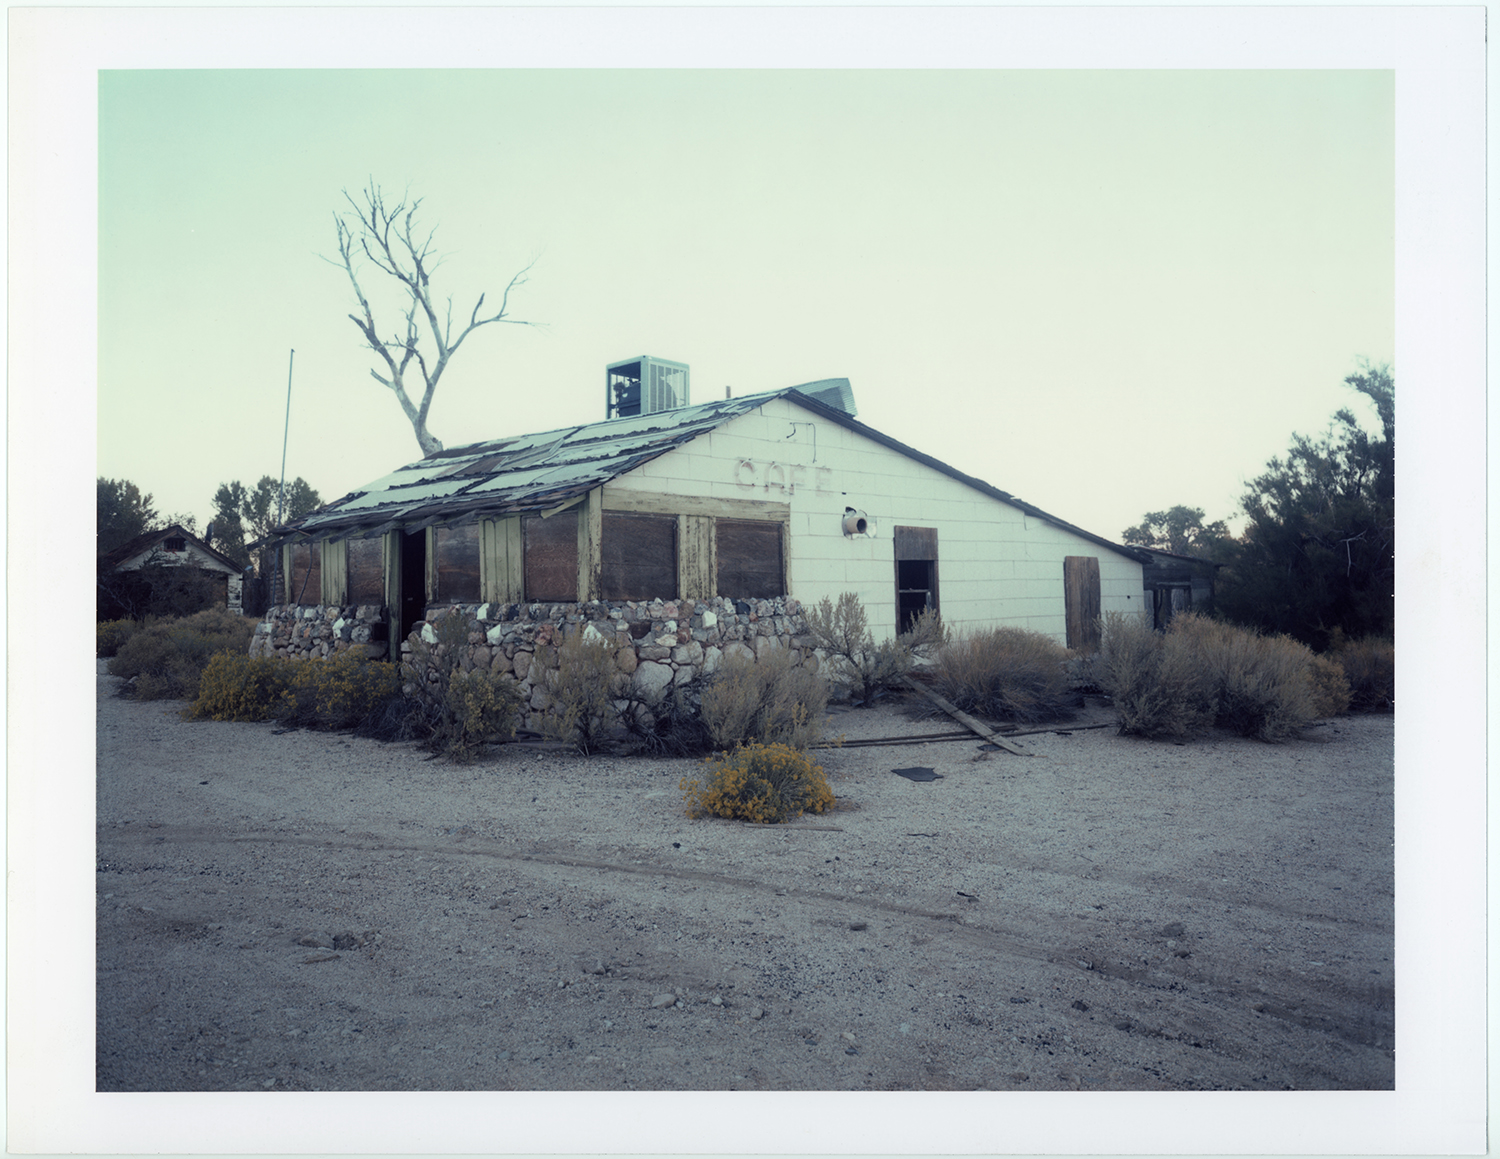 Forgotten cafe, Highway 395, CA, 2006/7 - 8x10 Polaroid 809